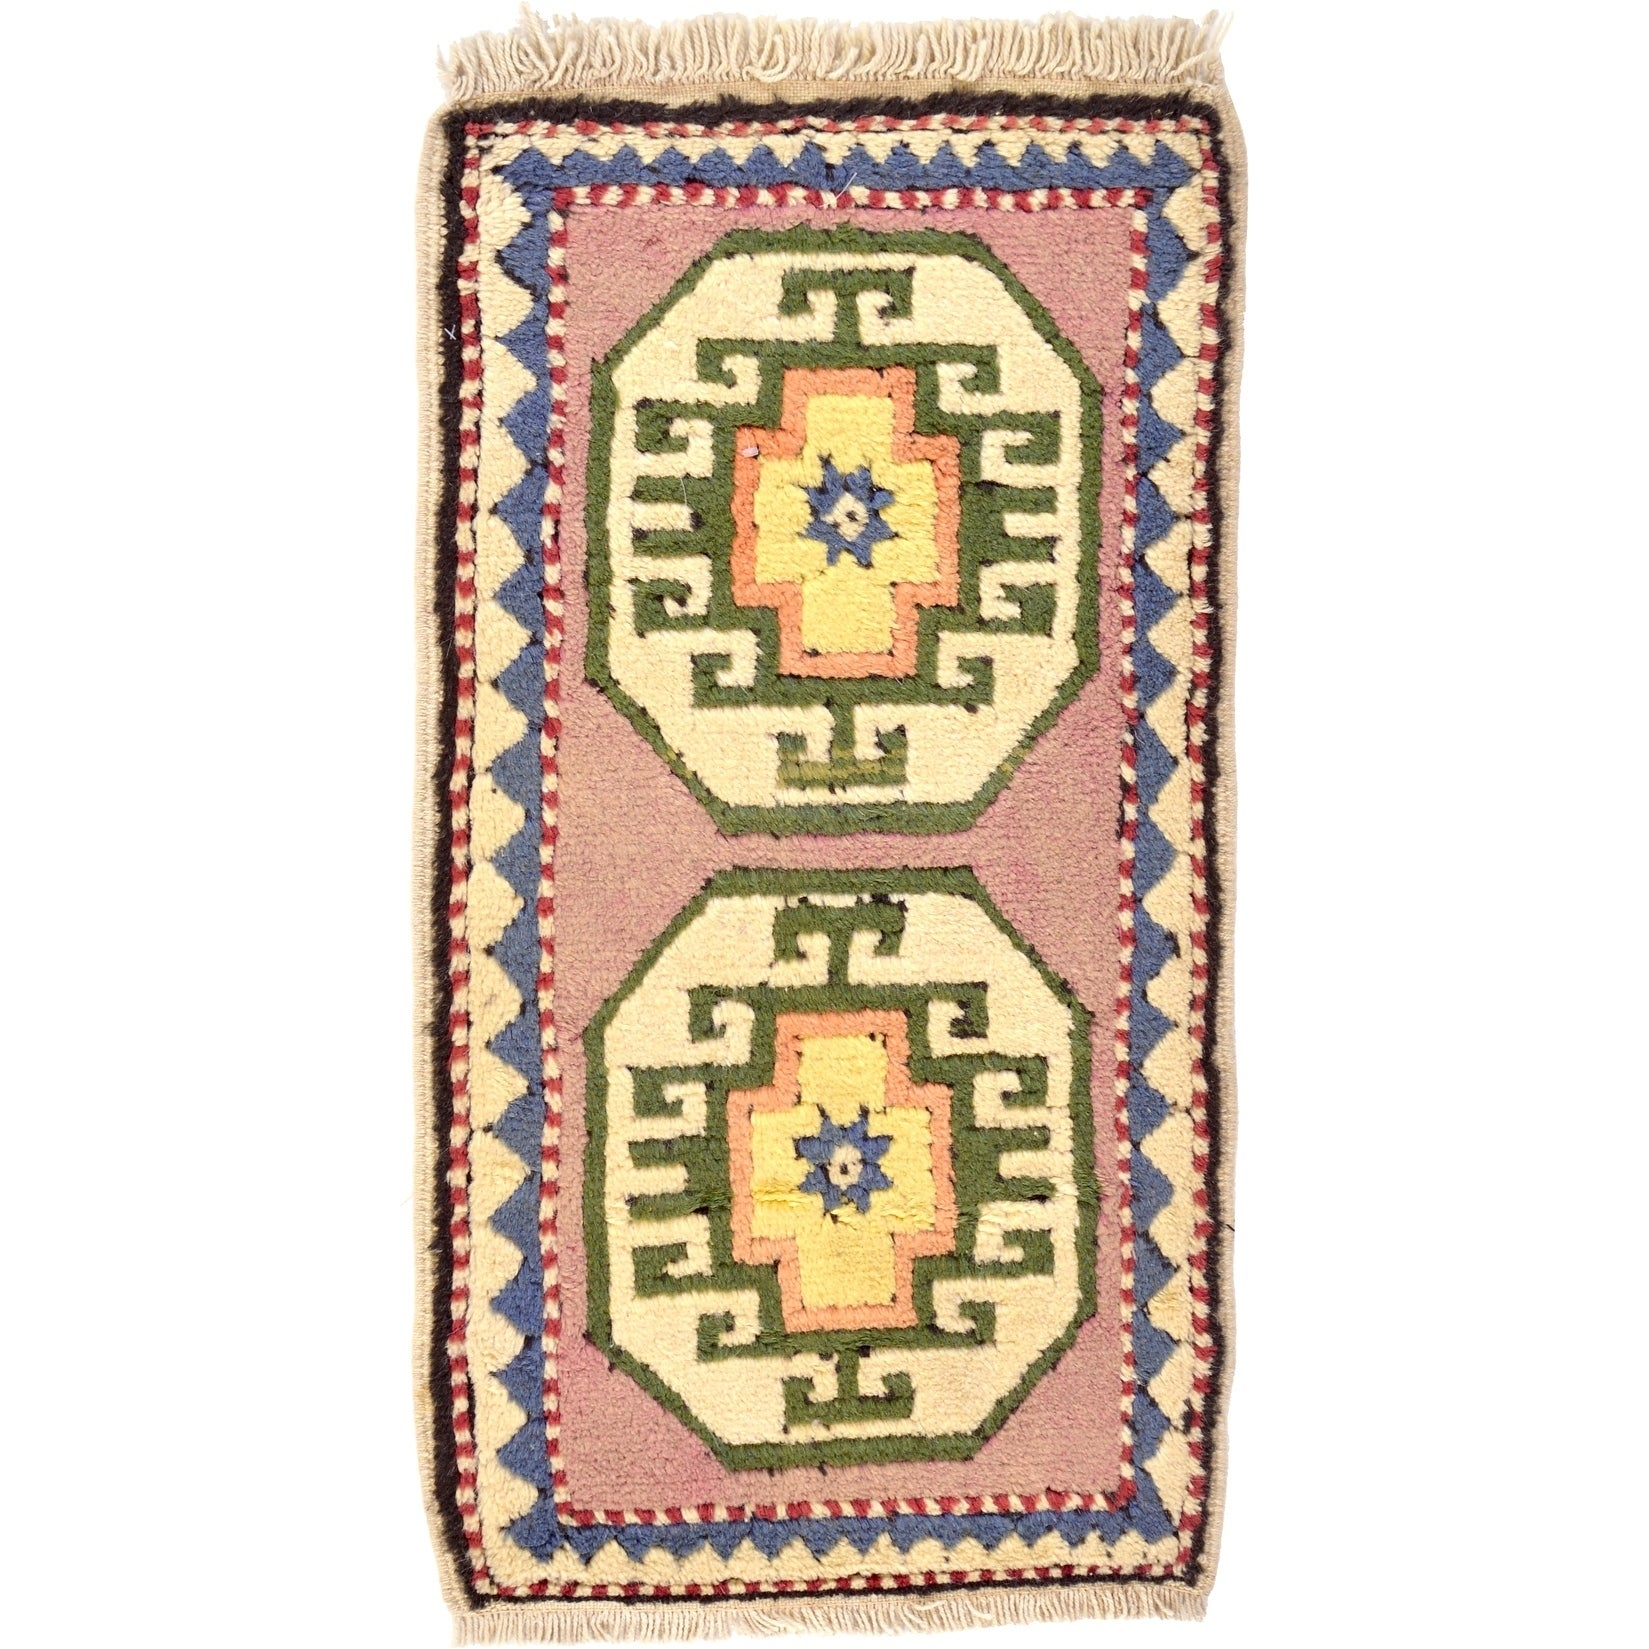 Hand Knotted Kars Wool Area Rug - 1' 9 x 3' 2 (puce - 1' 9 x 3' 2)